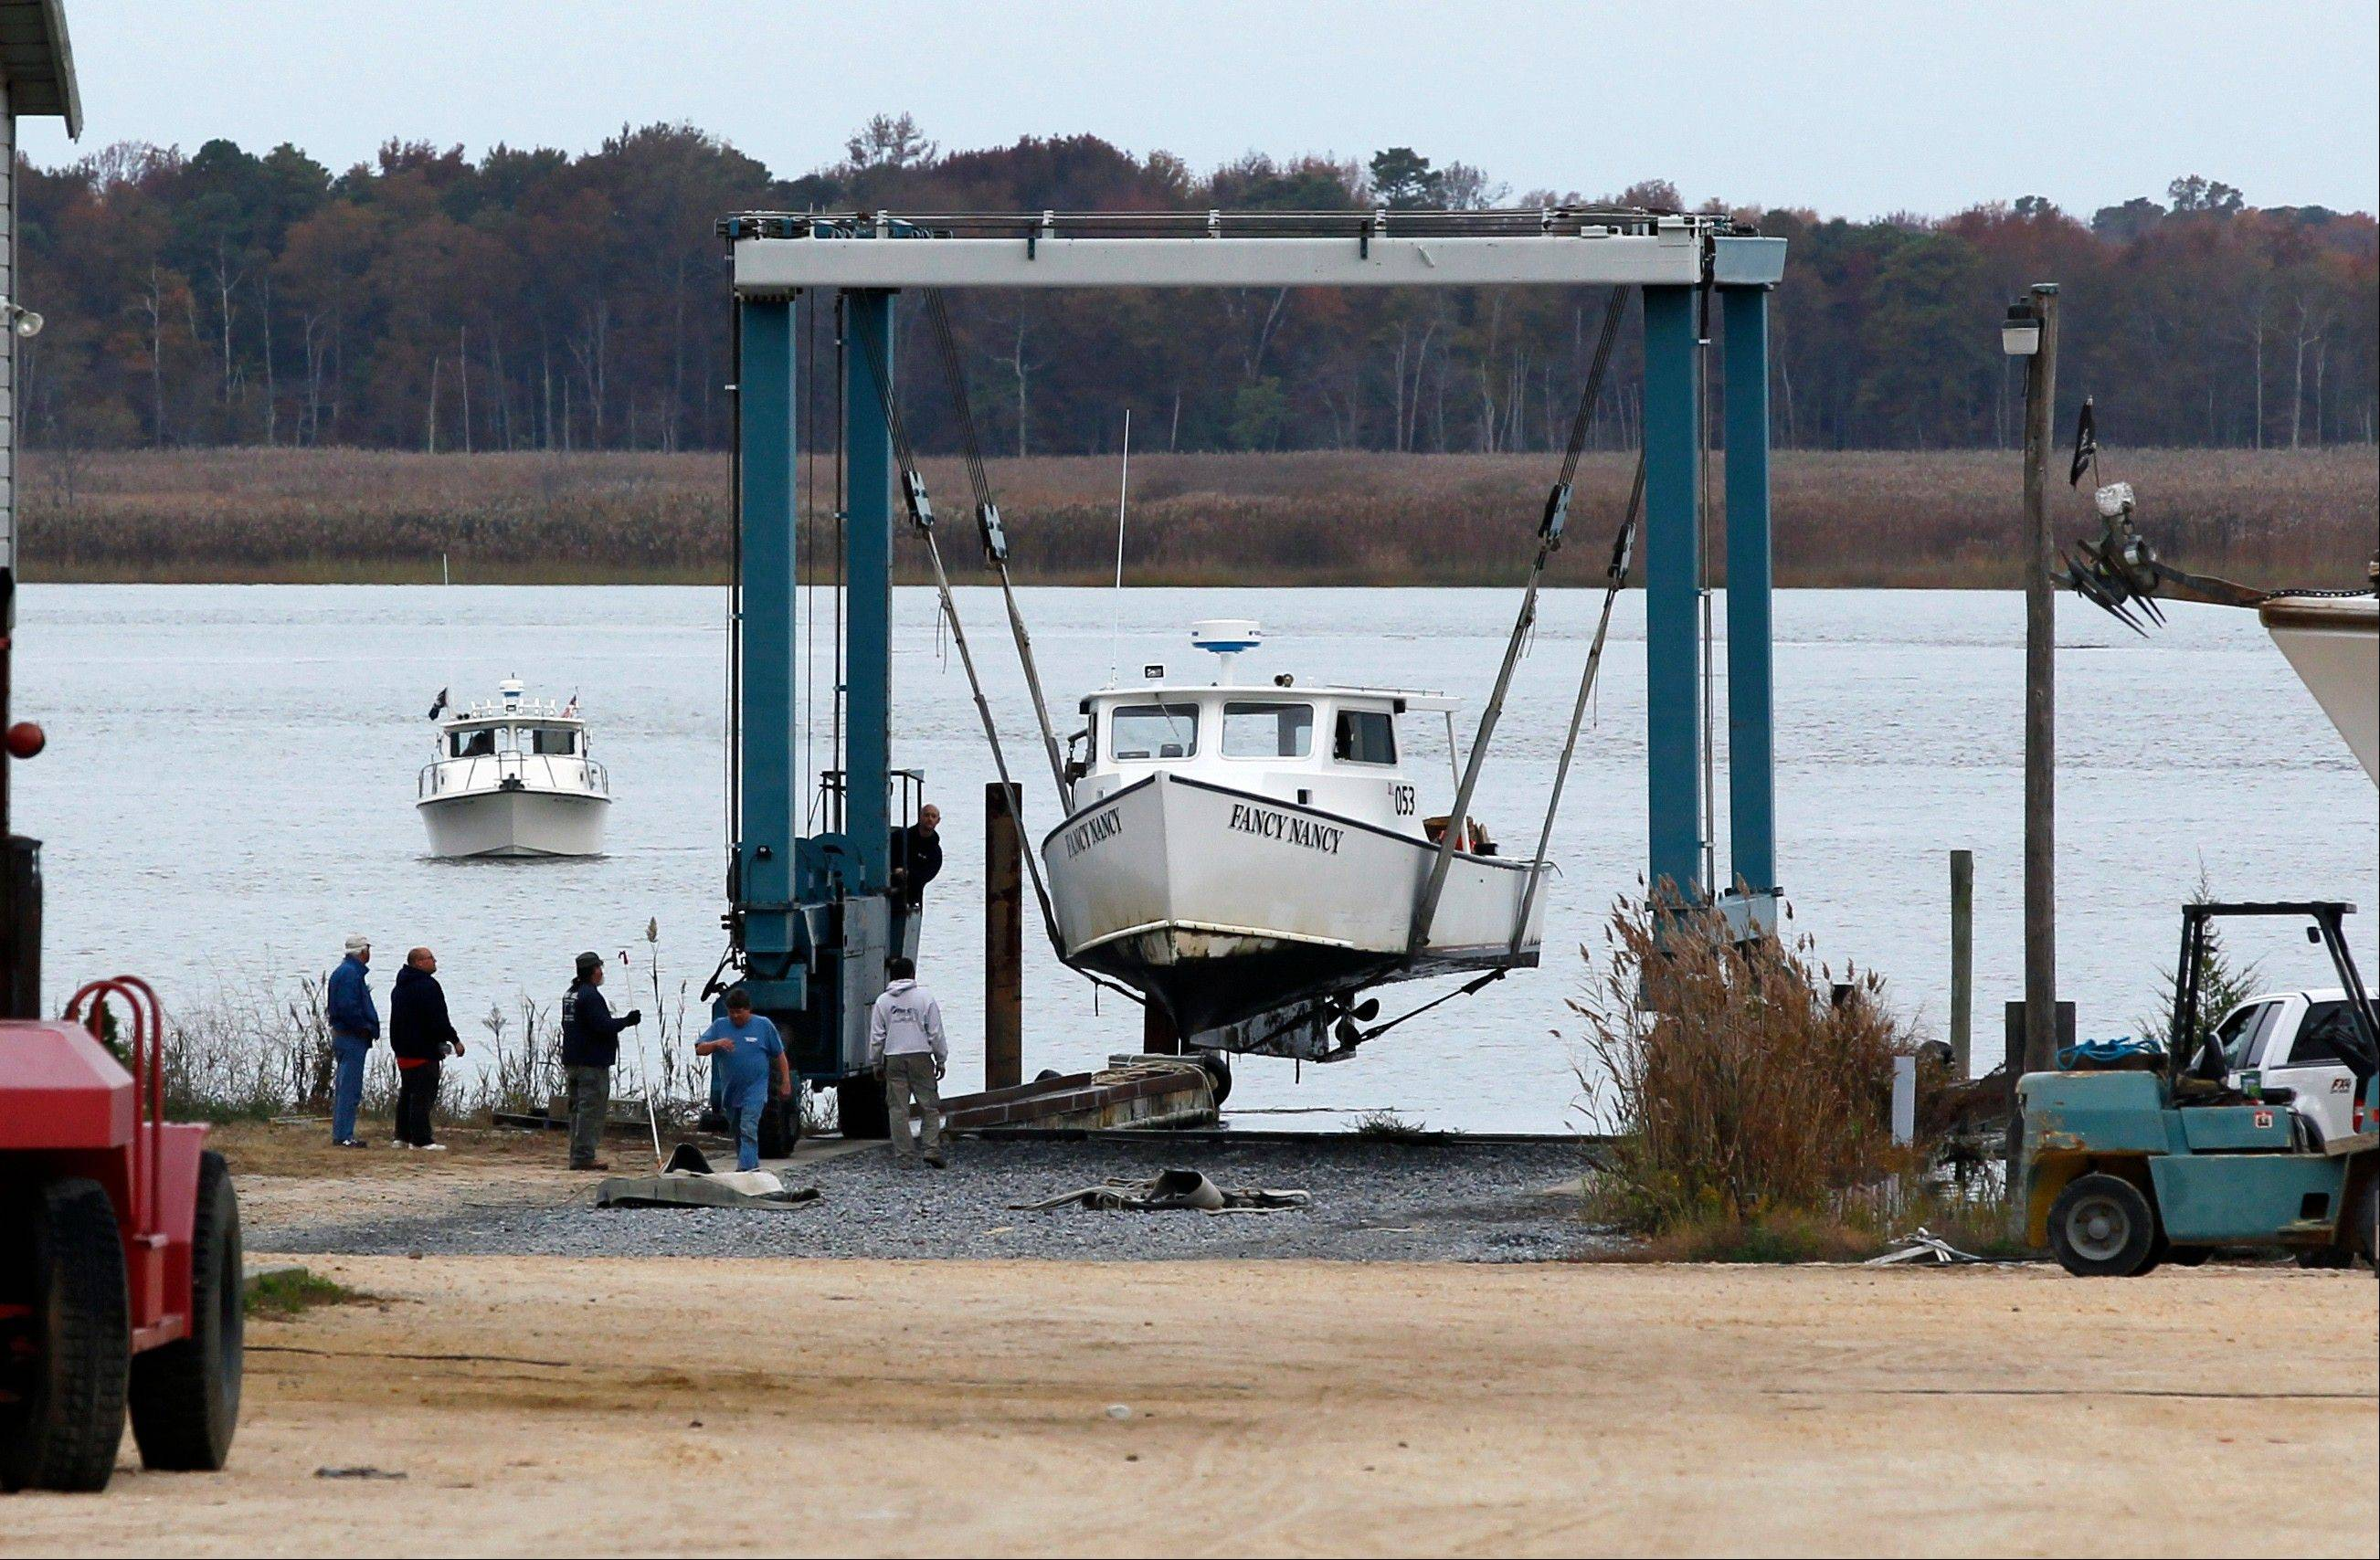 As another boat waits its turn, a 50-ton lift raises Fancy Nancy, a 40-foot commercial fishing boat, out of the Maurice River at Yank Marine Services marina Saturday, Oct. 27, 2012, in Dorchester, N.J., in preparation for Hurricane Sandy.